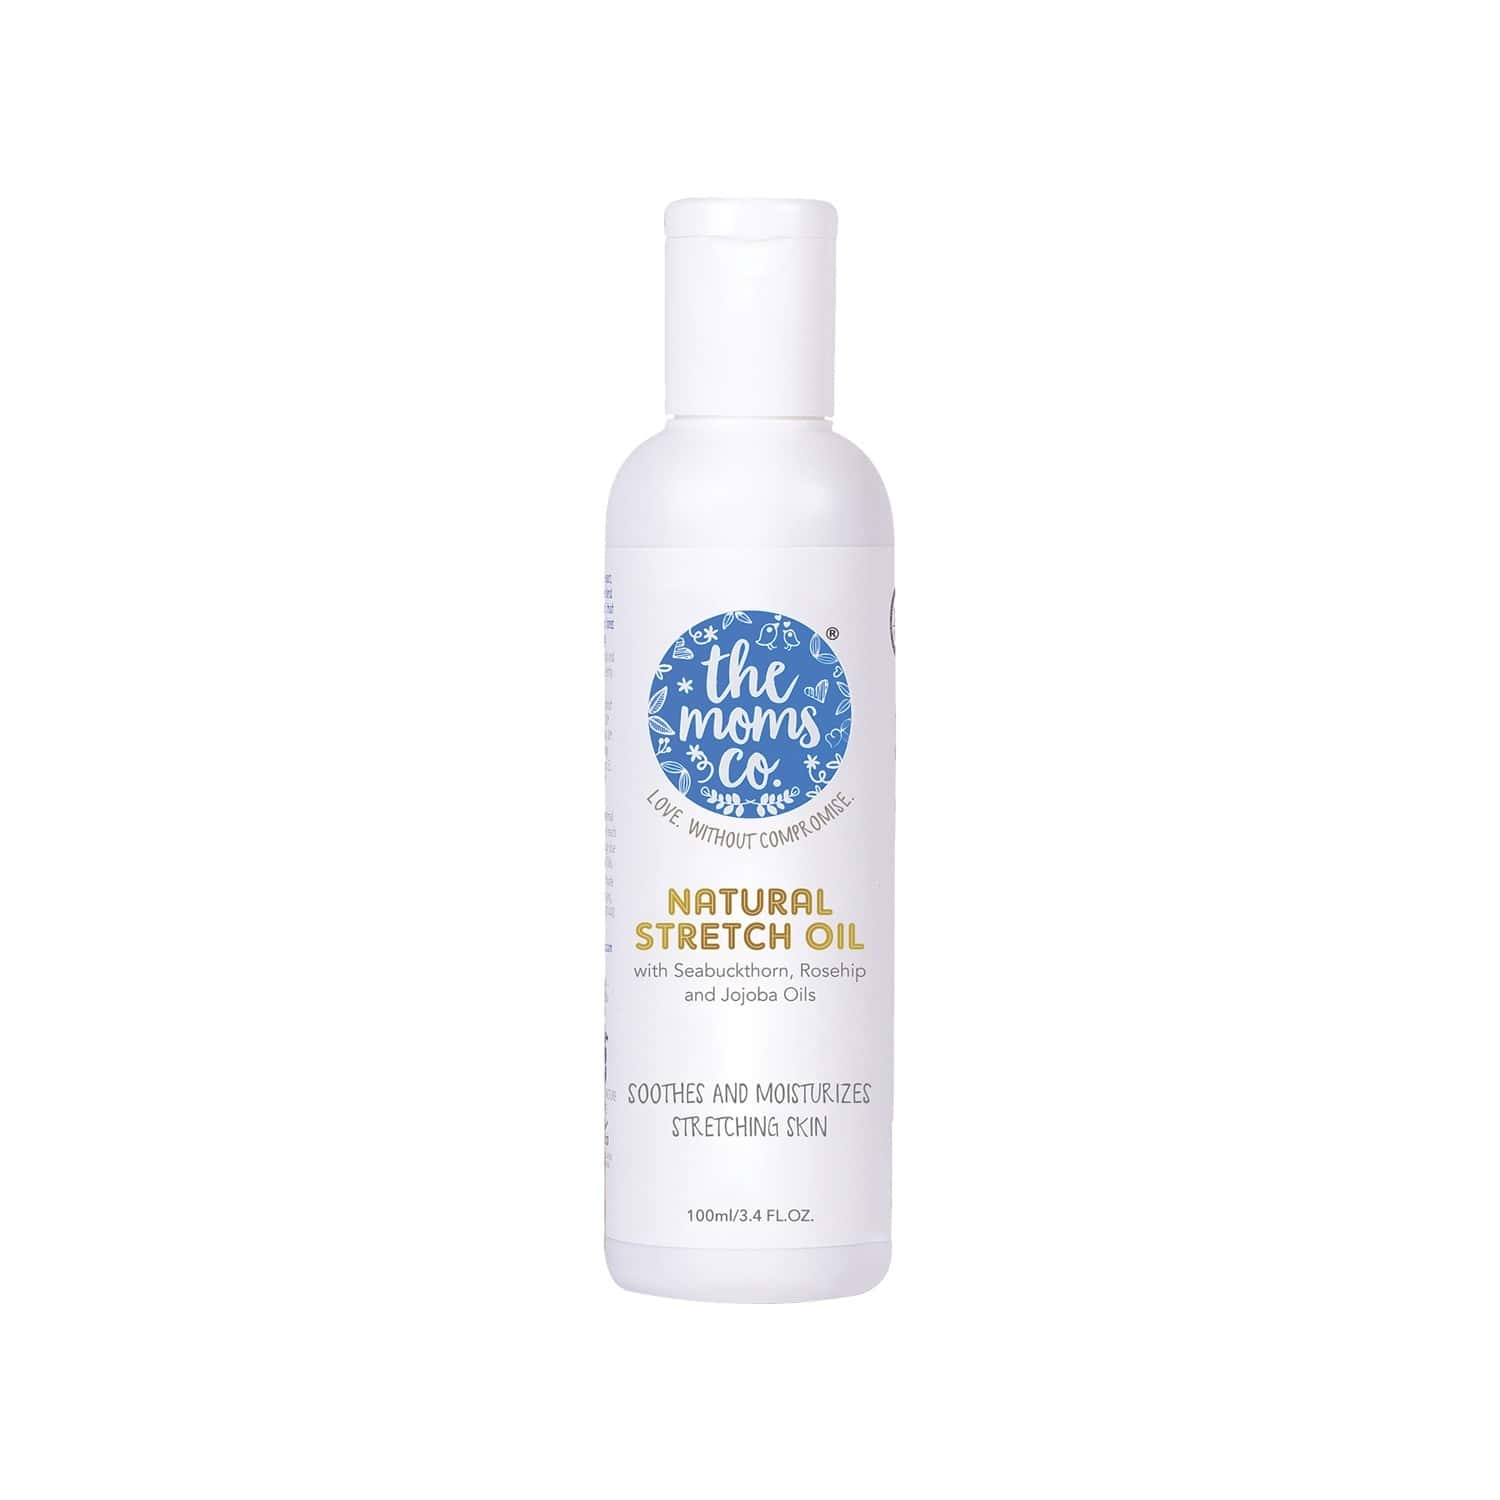 The Moms Co. Natural Stretch Oil Bottle Of 100 Ml